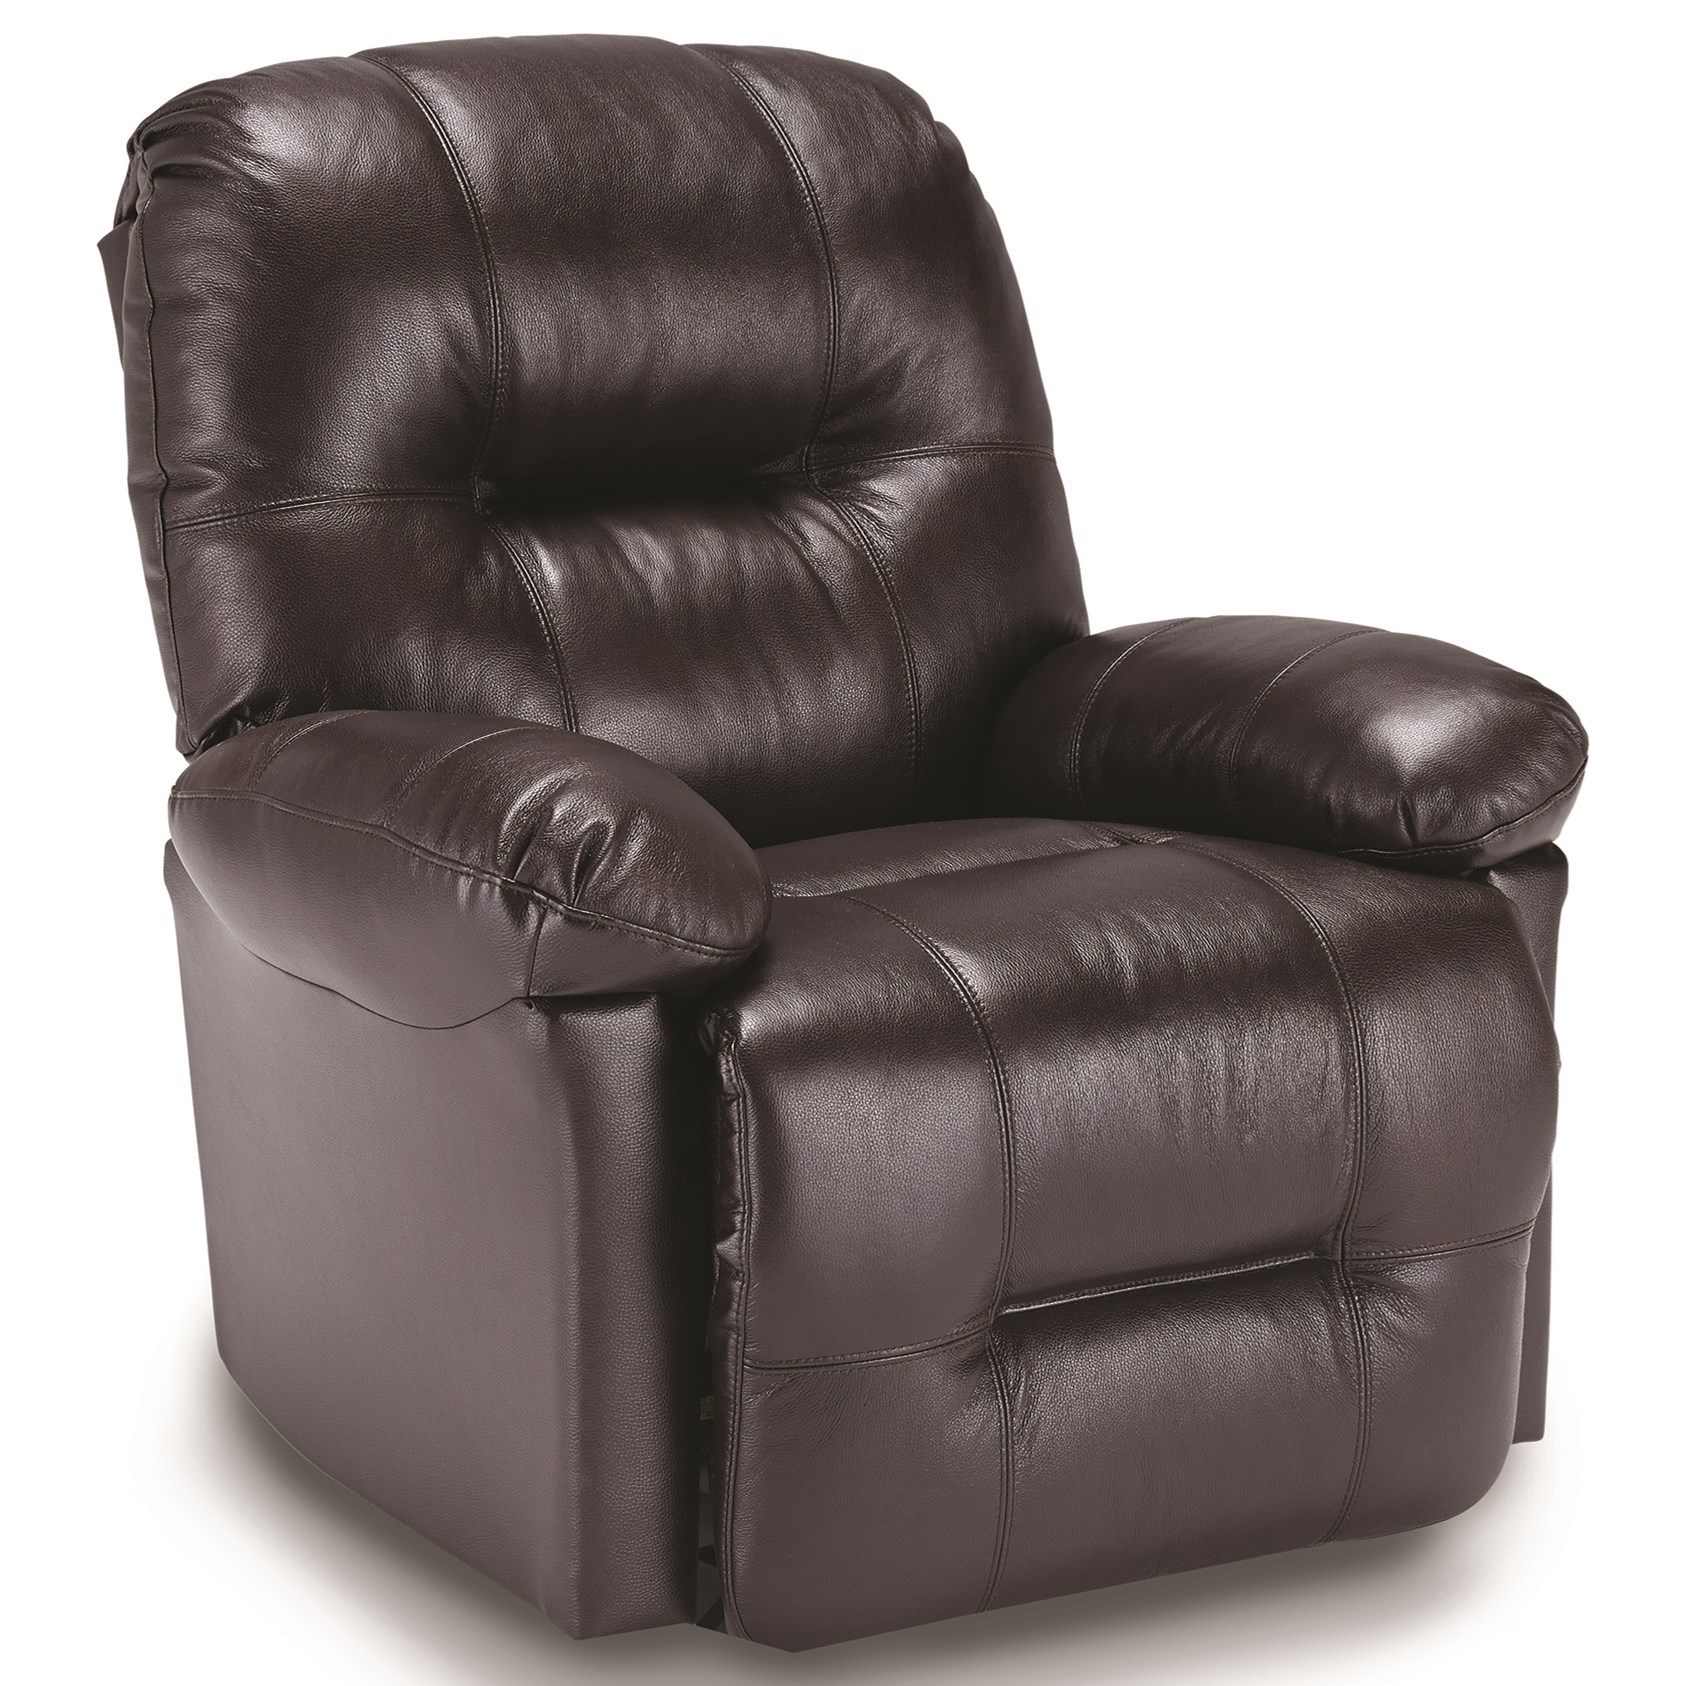 Best Home Furnishings S501 Zaynah Power Lift Recliner - Item Number: 9MW21LV-71296L